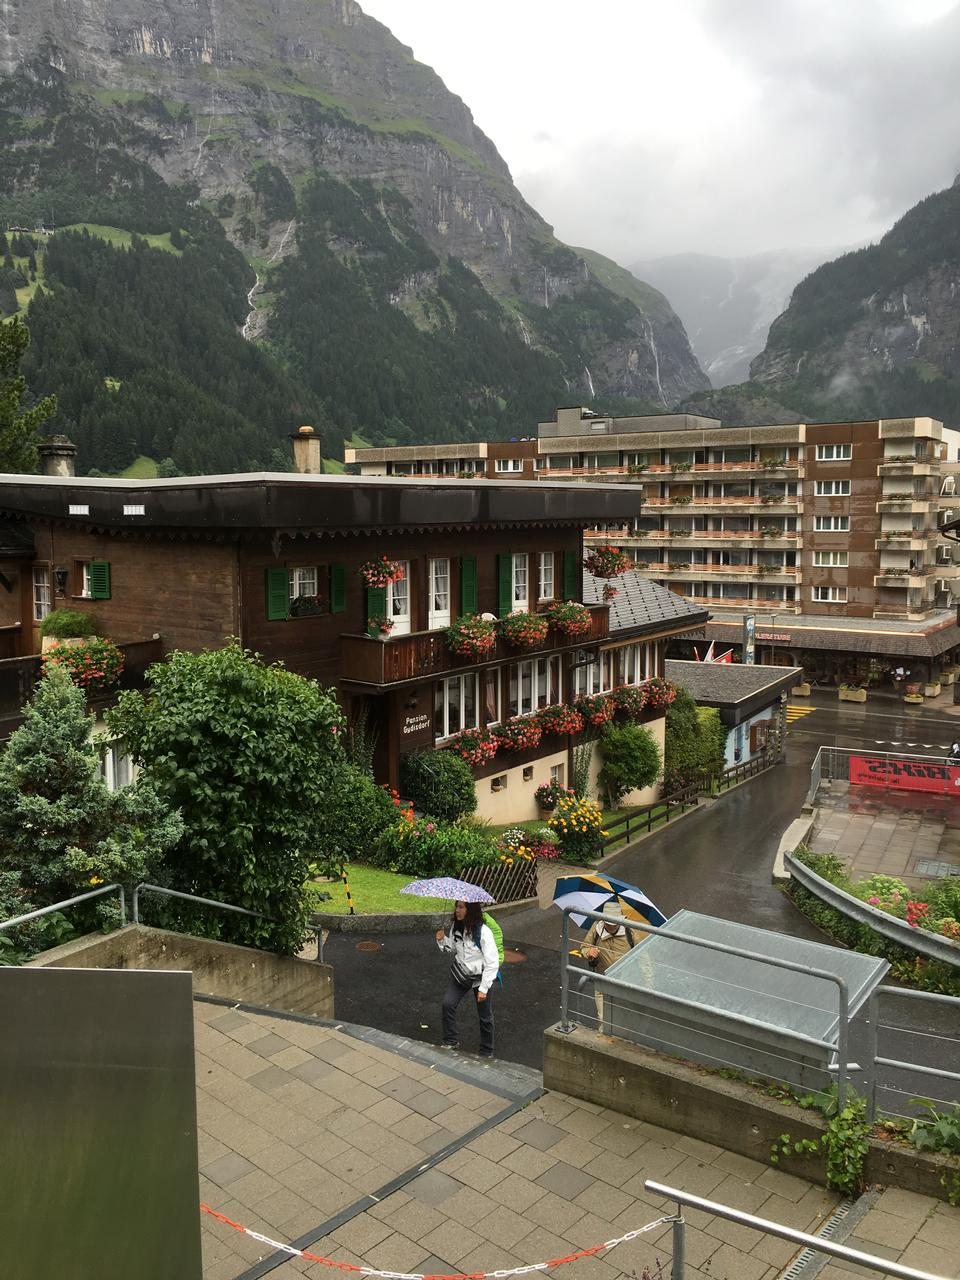 Lauterbrunnen with shops hotels terraces in swiss